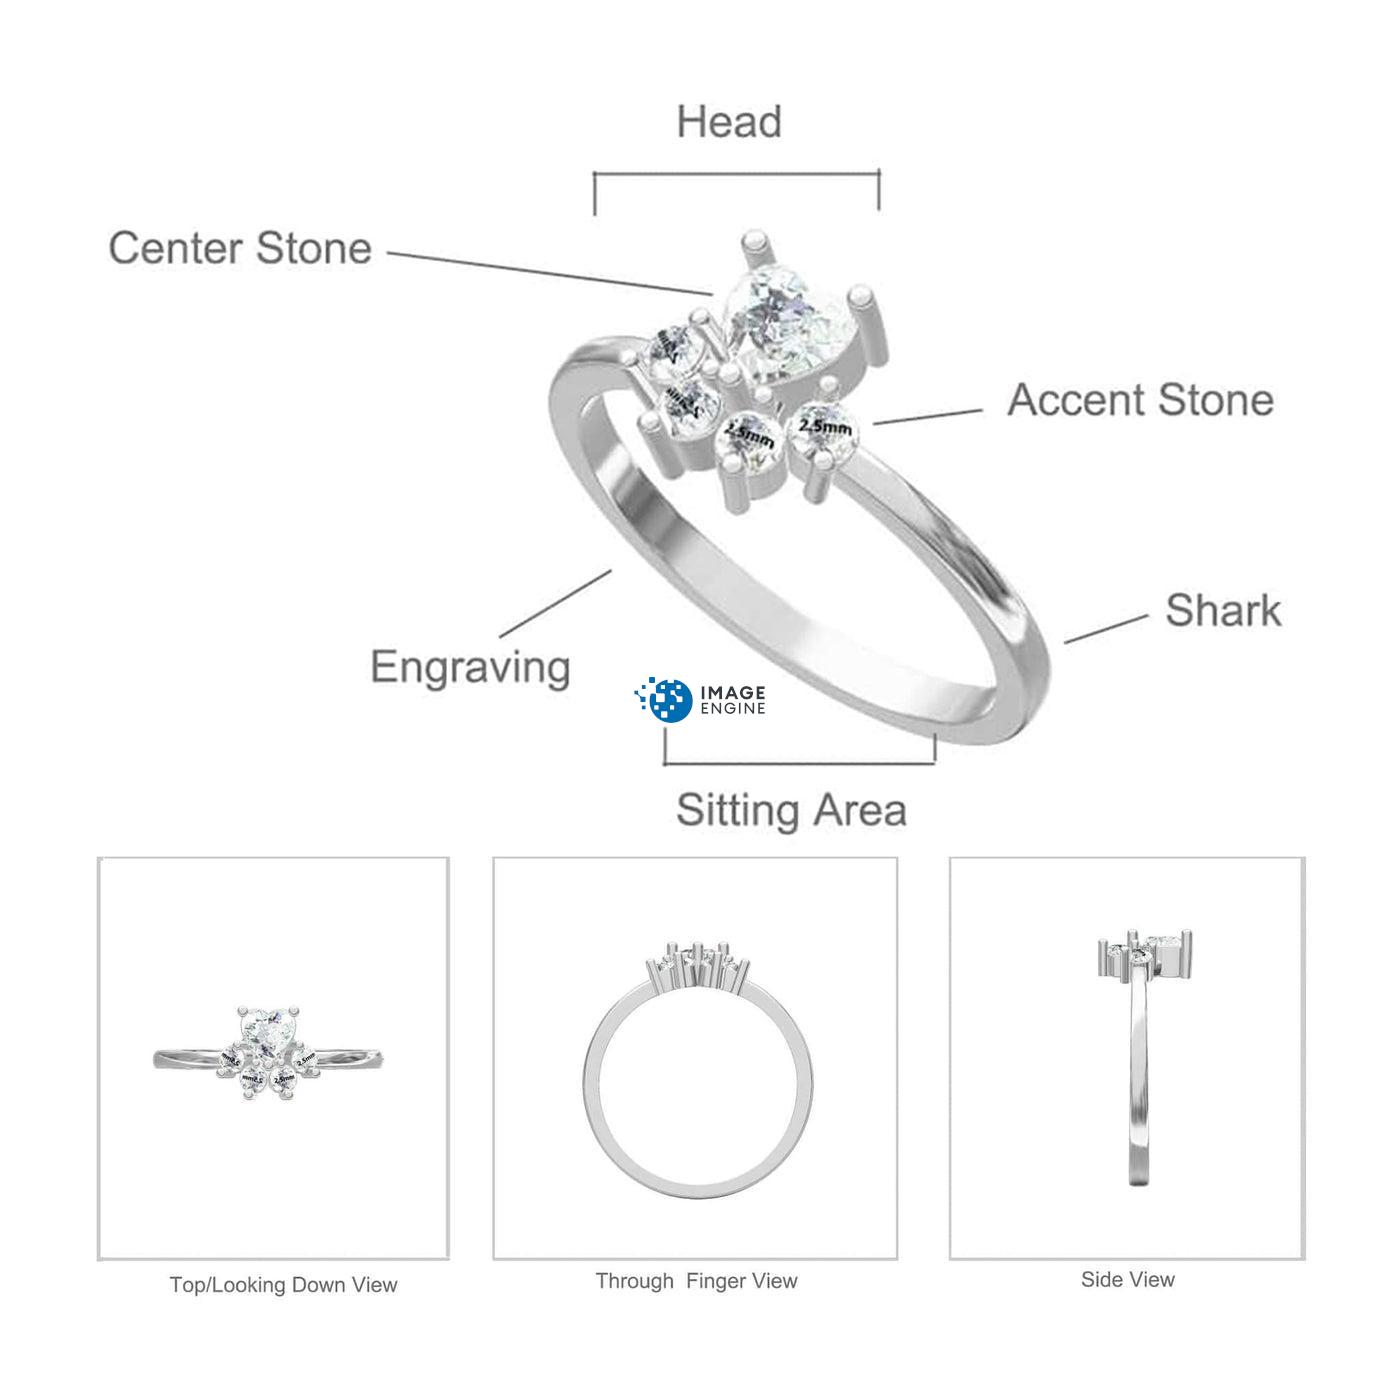 Bella Paw Ring Diagram and Specifications